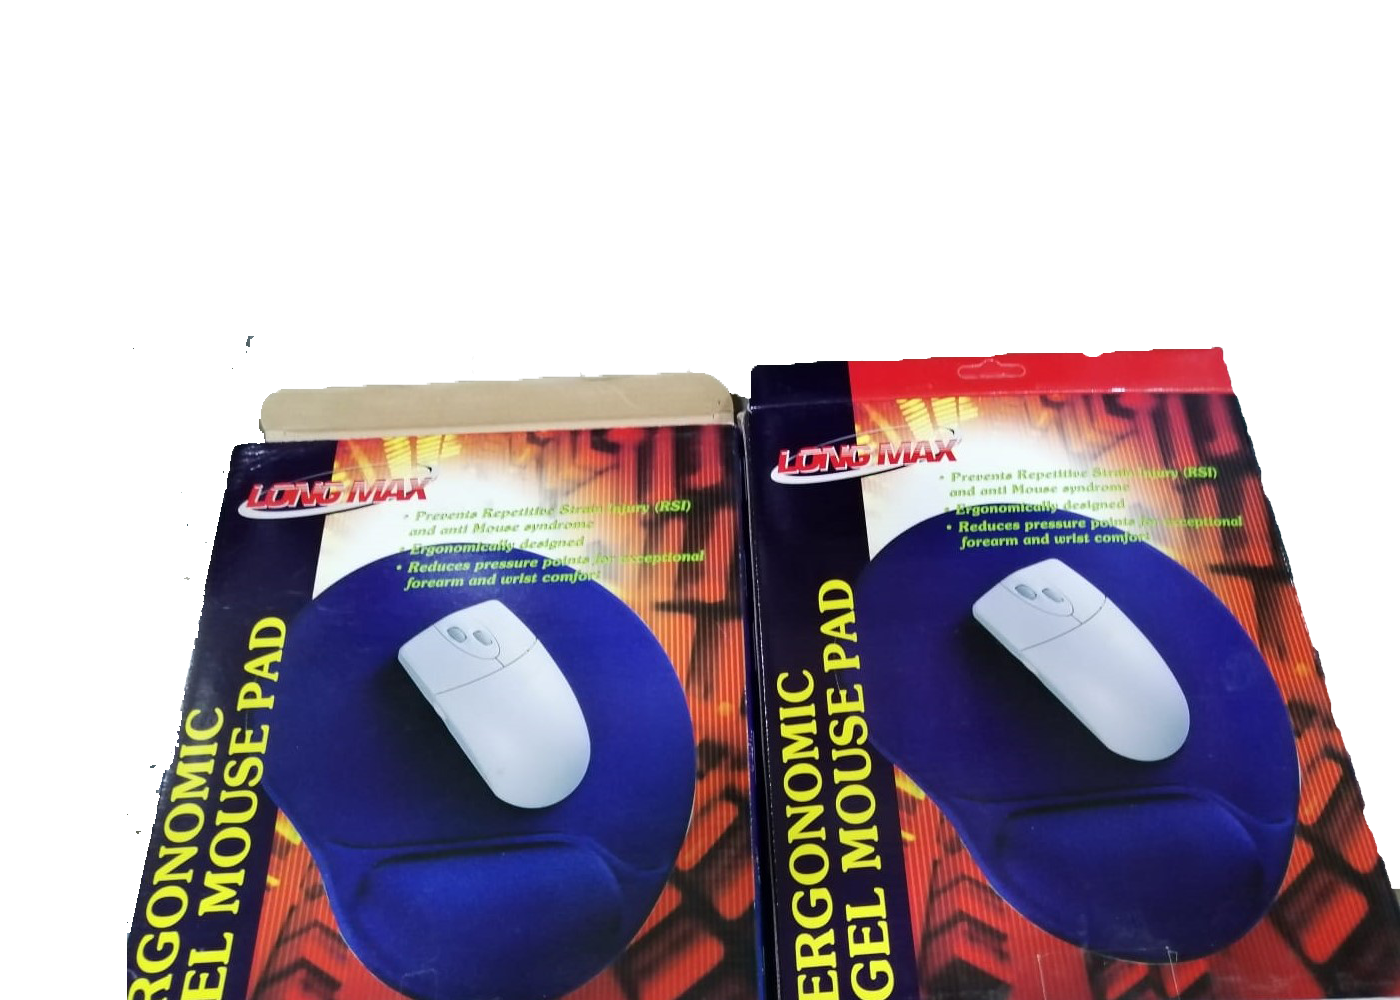 Micro Meilon Gel Mouse Pad With Wrist Support Eggplant Design Image